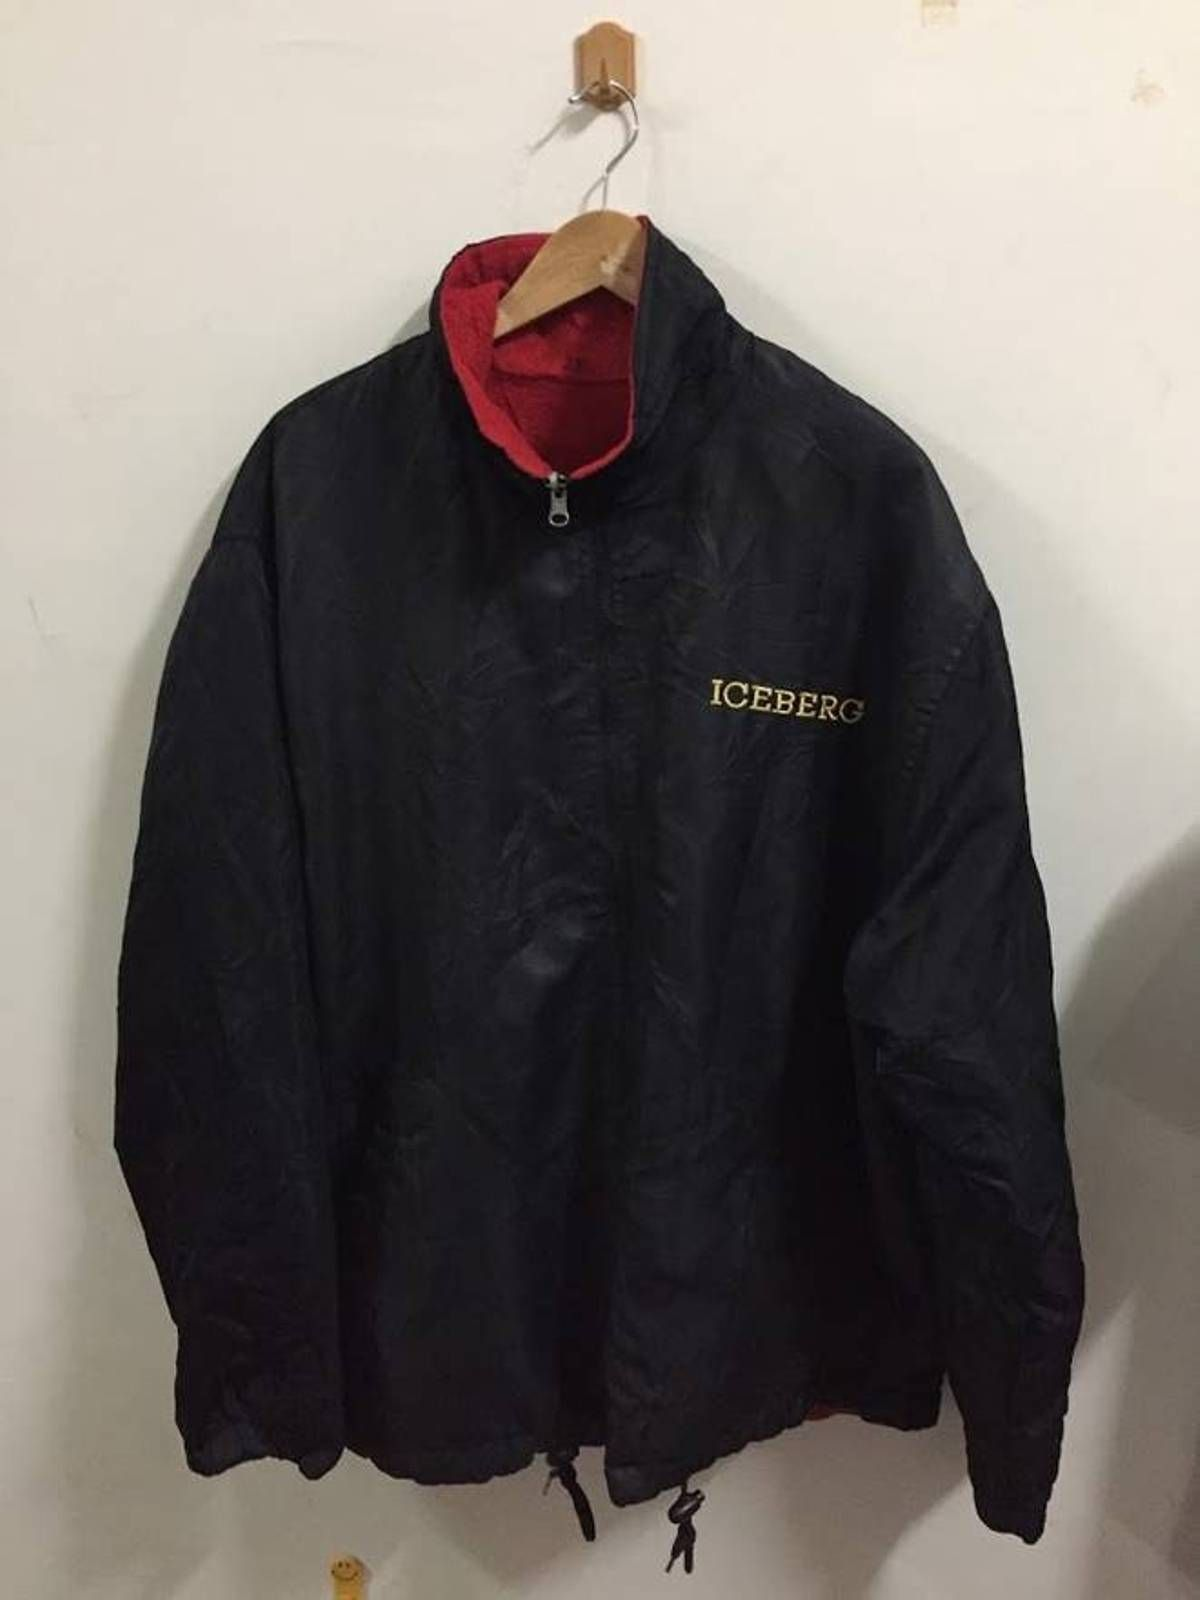 Iceberg Iceberg Mickey Jacket Size Xxl Mouse Pull Over Size Xxl Jackets For Sale Heroine Jackets Online Vintage Shop Outerwear [ 1600 x 1200 Pixel ]